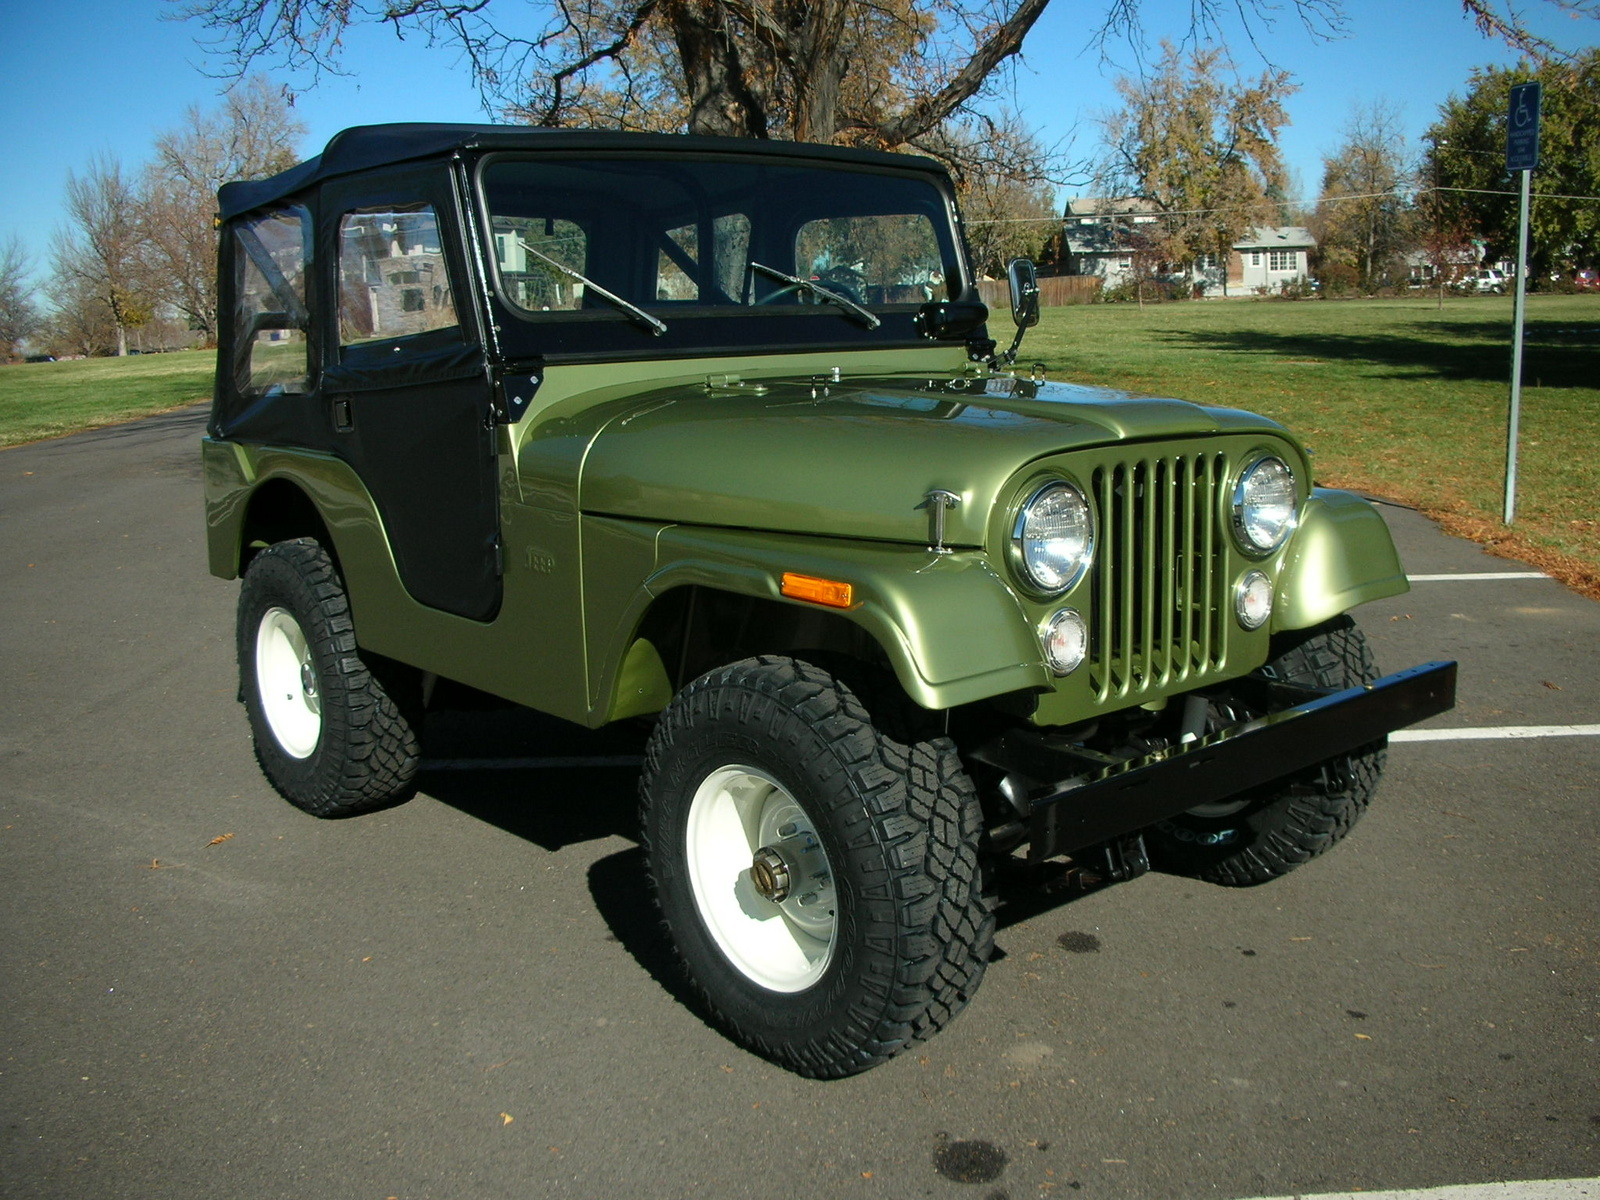 1981 jeep wagoneer pictures cargurus - 1971 Jeep Cj5 Pictures Cargurus